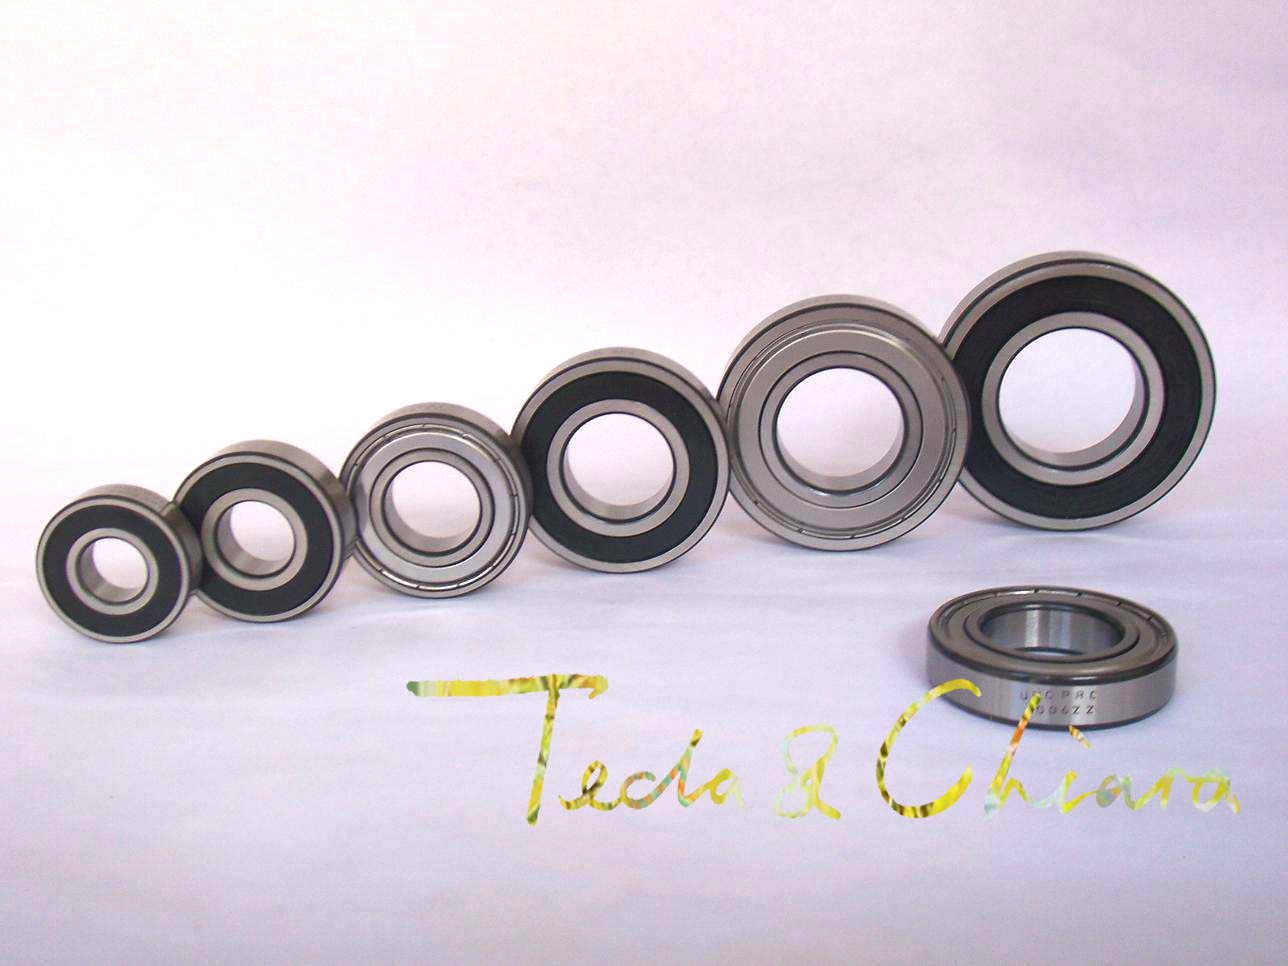 6701 6701ZZ 6701RS 6701-2Z 6701Z 6701-2RS ZZ RS RZ 2RZ Deep Groove Ball Bearings 12 x 18 x 4mm High Quality 604 604zz 604rs 604 2z 604z 604 2rs zz rs rz 2rz deep groove ball bearings 4 x 12 x 4mm high quality